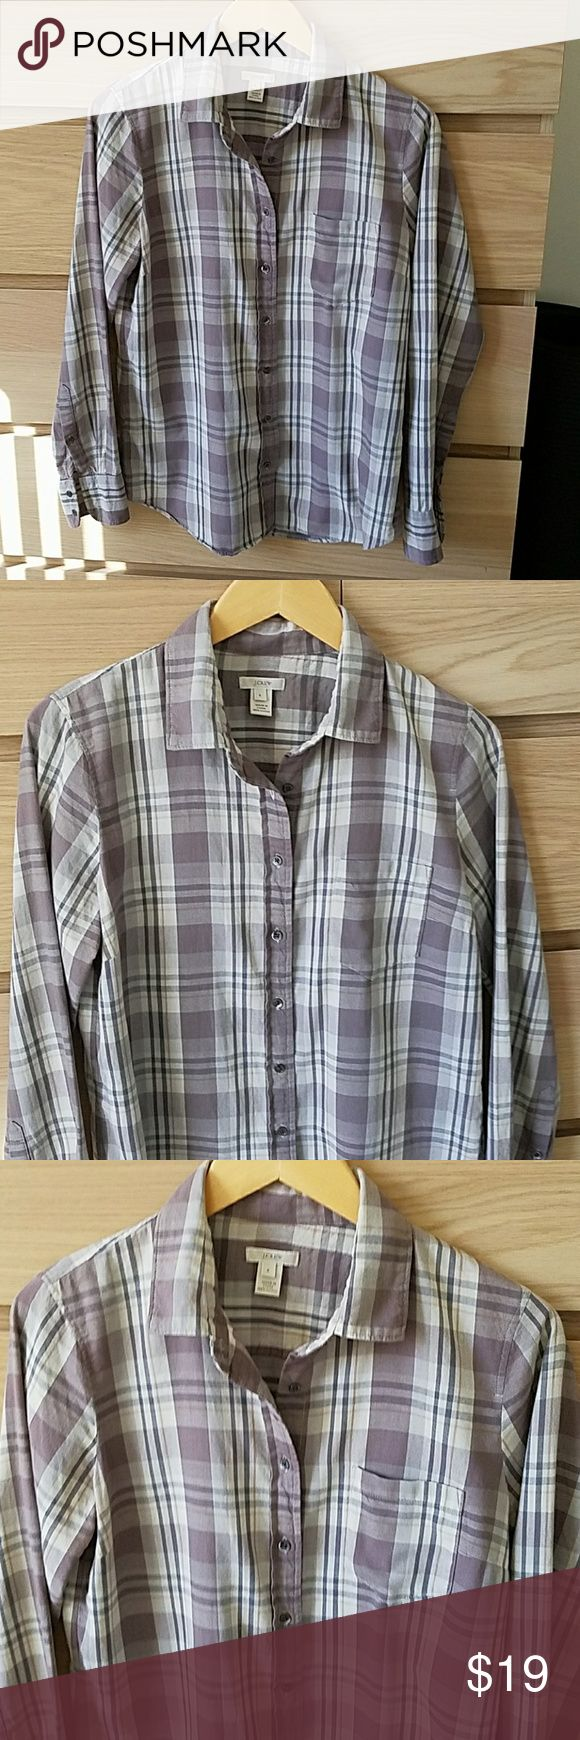 J Crew plaid boyfriend shirt J. Crew plaid boyfriend shirt. This is a re posh in very good condition. I needed a 6 and finally found one in this color so your gain! Washed pressed and ready to ship tomorrow. Smoke free home. Offers welcome. J. Crew Tops Button Down Shirts